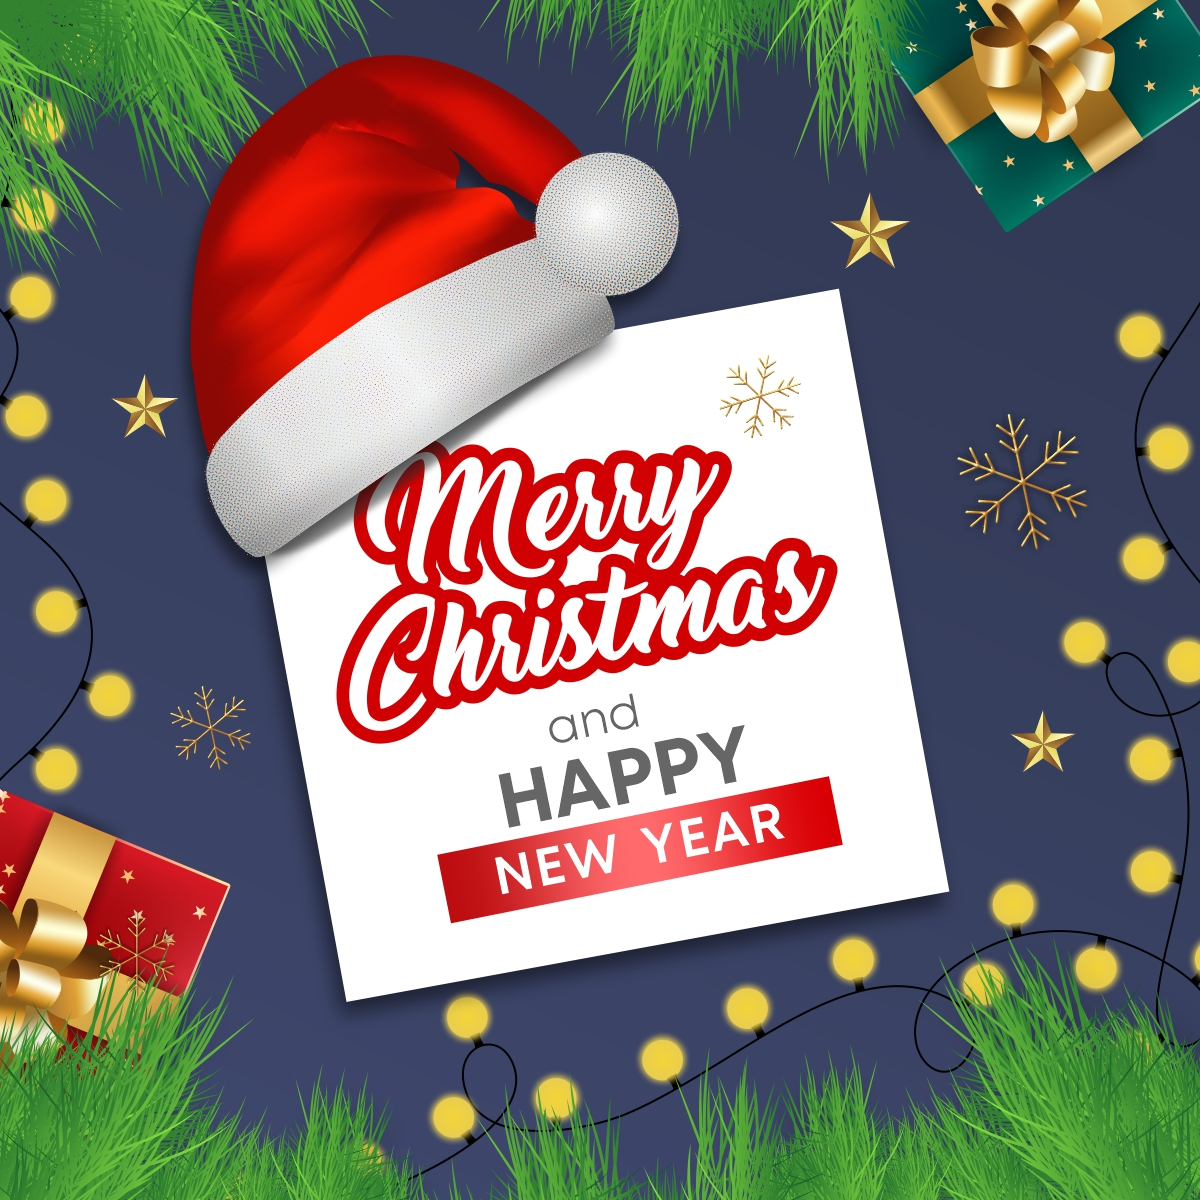 Download Merry Christmas And Happy New Year Greeting Card Xmas Background With Santa Holiday Banner Web Poster Free Vector Coreldraw Design Download Free Cdr Vector Stock Images Tutorials Tips Tricks